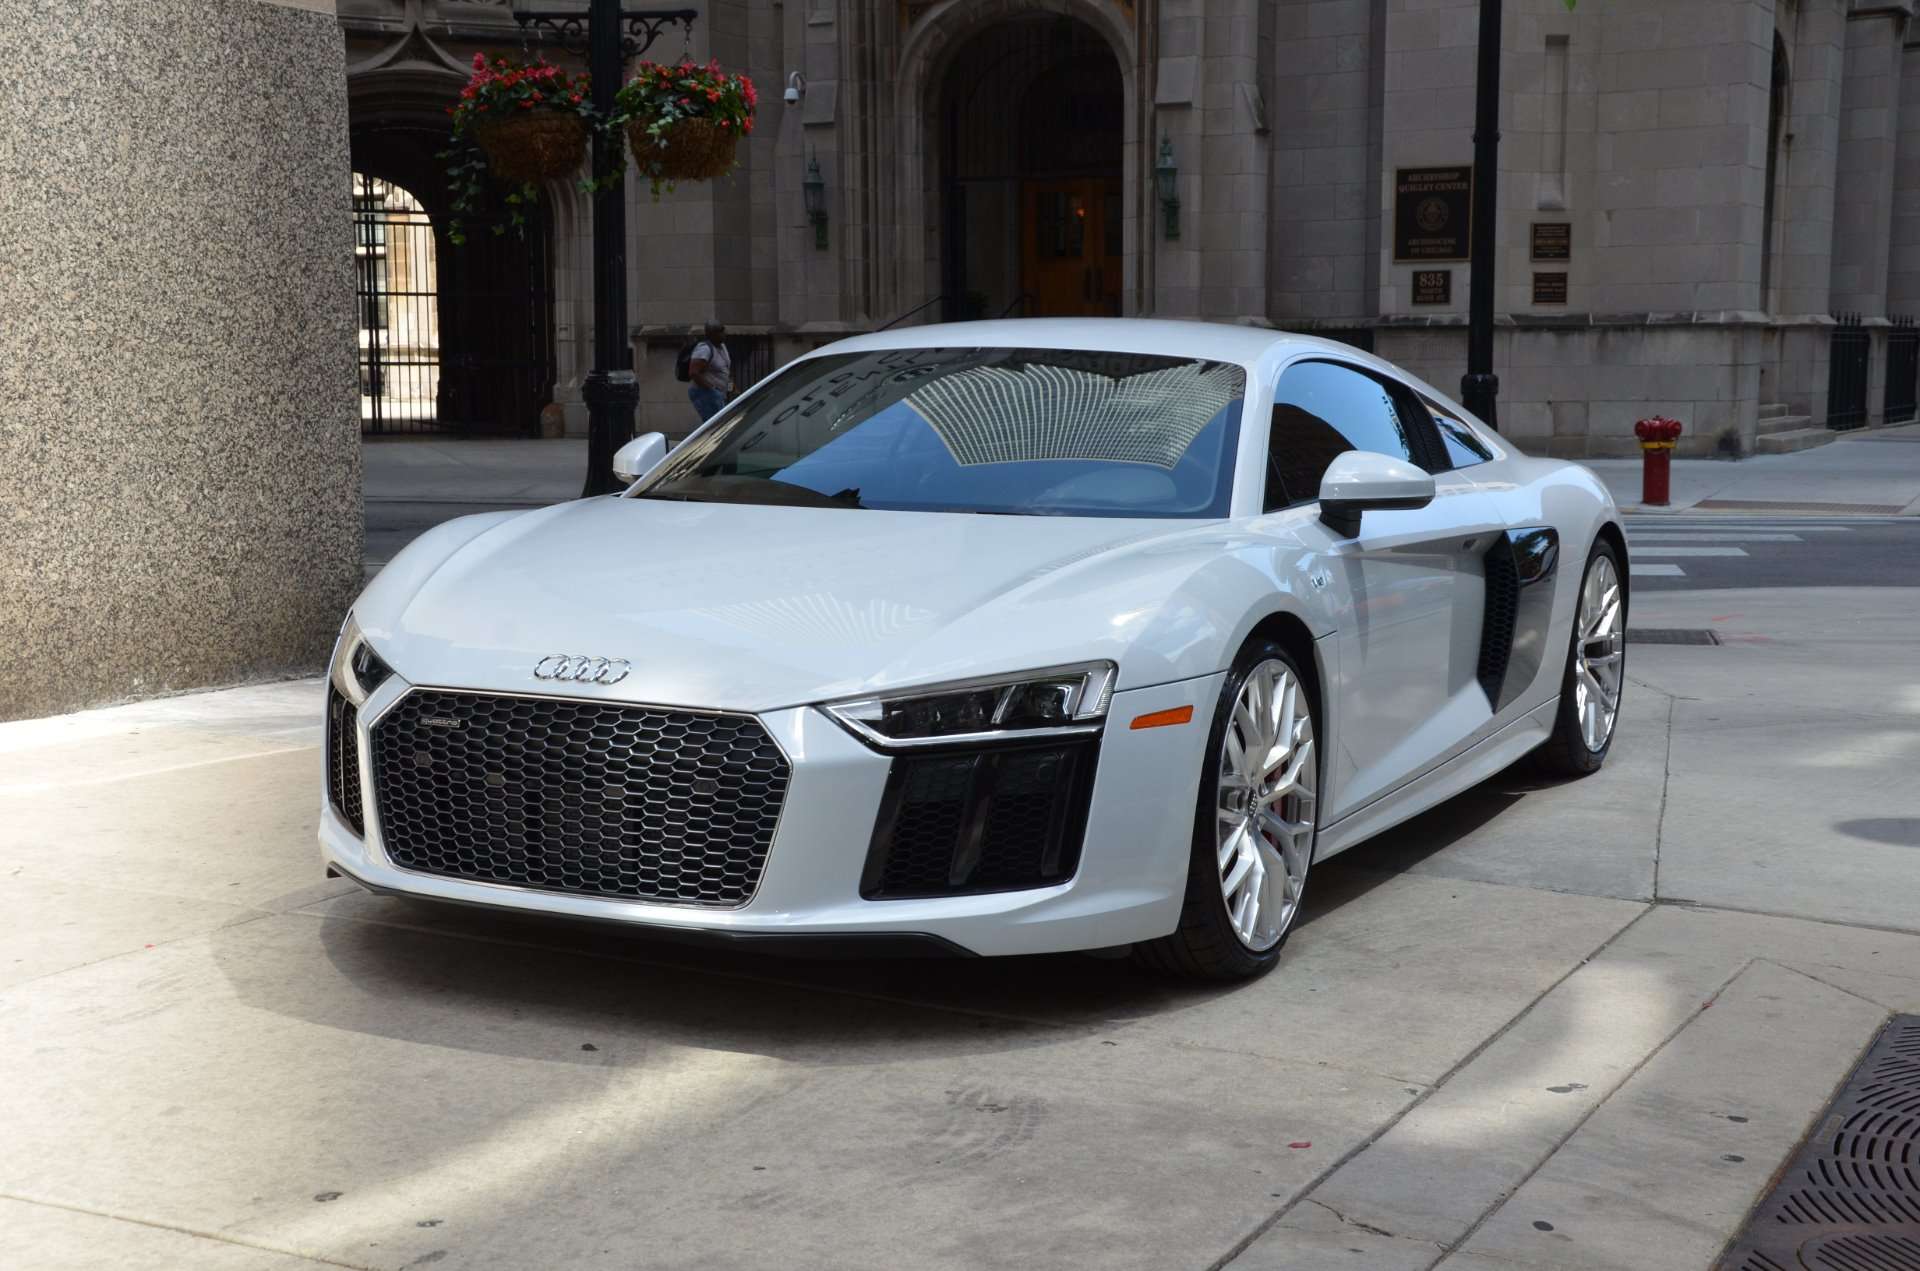 2017 Audi R8 5.2 quattro V10 Stock # GC2159-S for sale near Chicago, IL | IL Audi Dealer